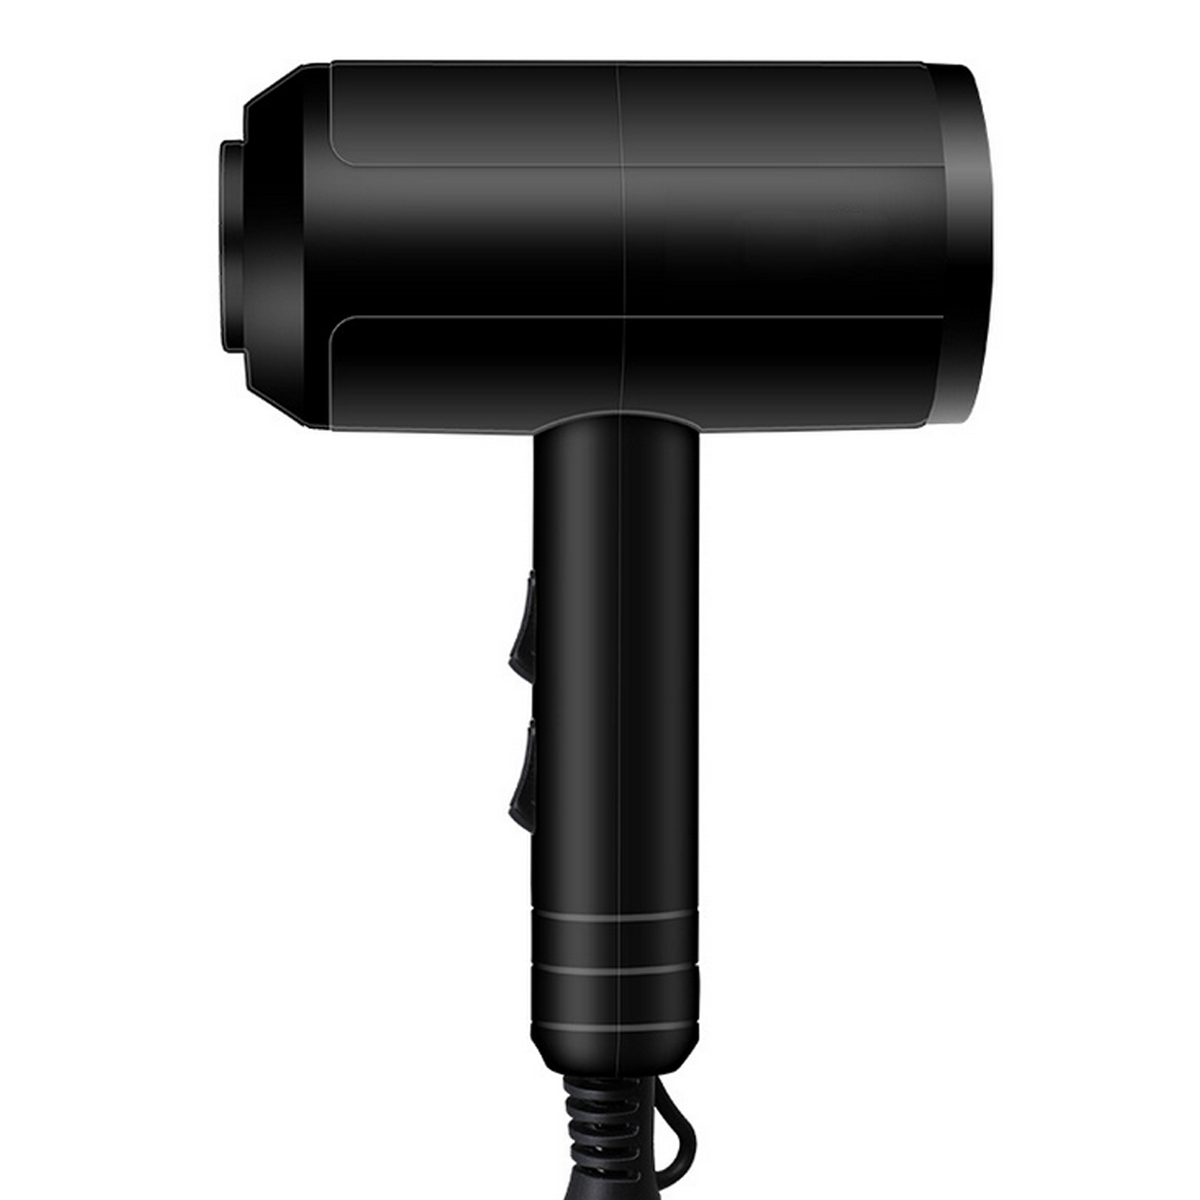 2200W Black Hot Hair Dryer Diffuser & Concentrator Nozzle Blower Pro Salon (Eachine1) Beaumont Search new